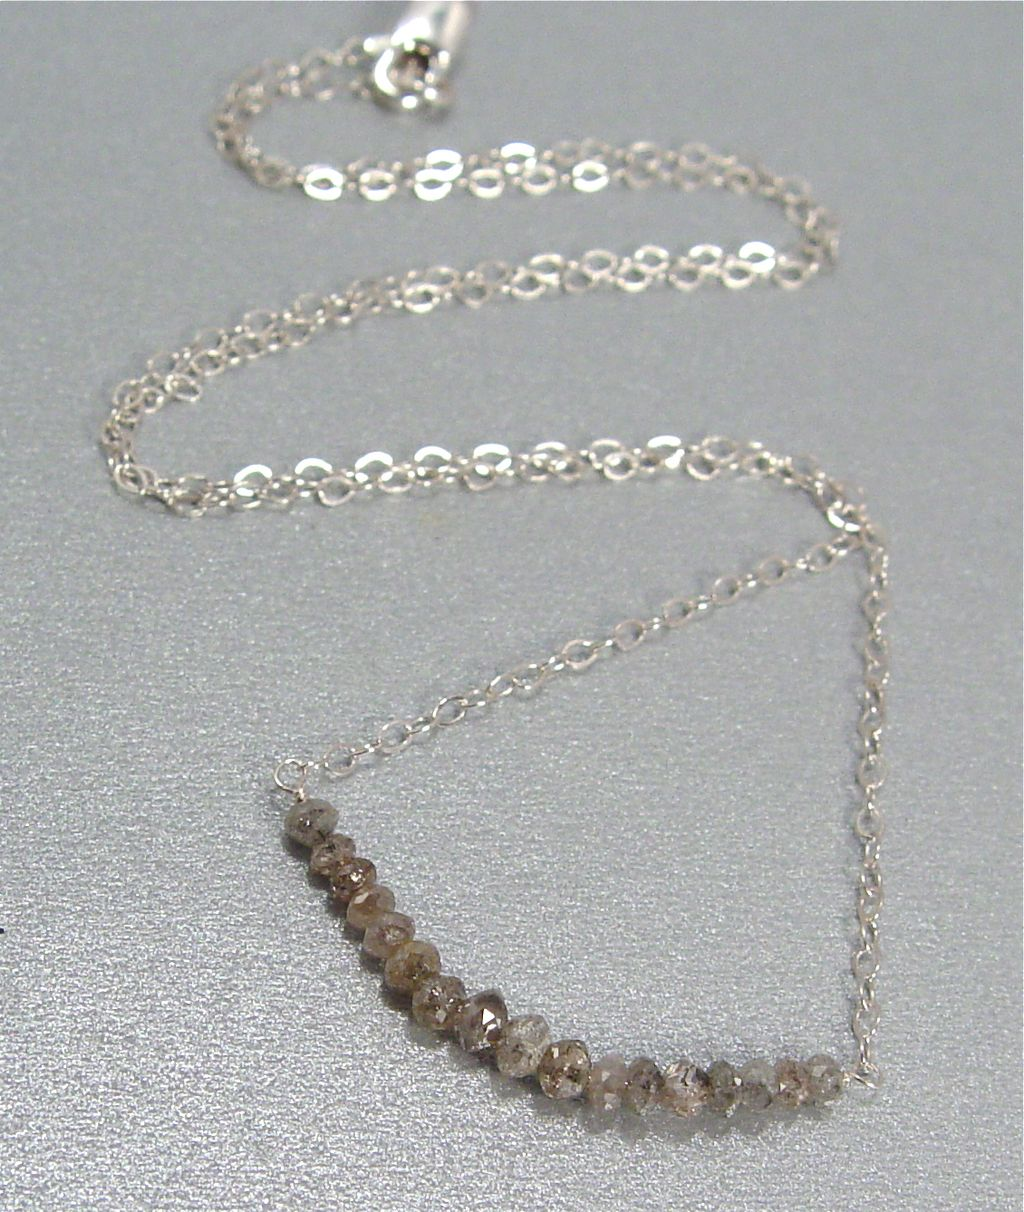 Flumina - Dark Silver Diamond and Sterling Silver Necklace